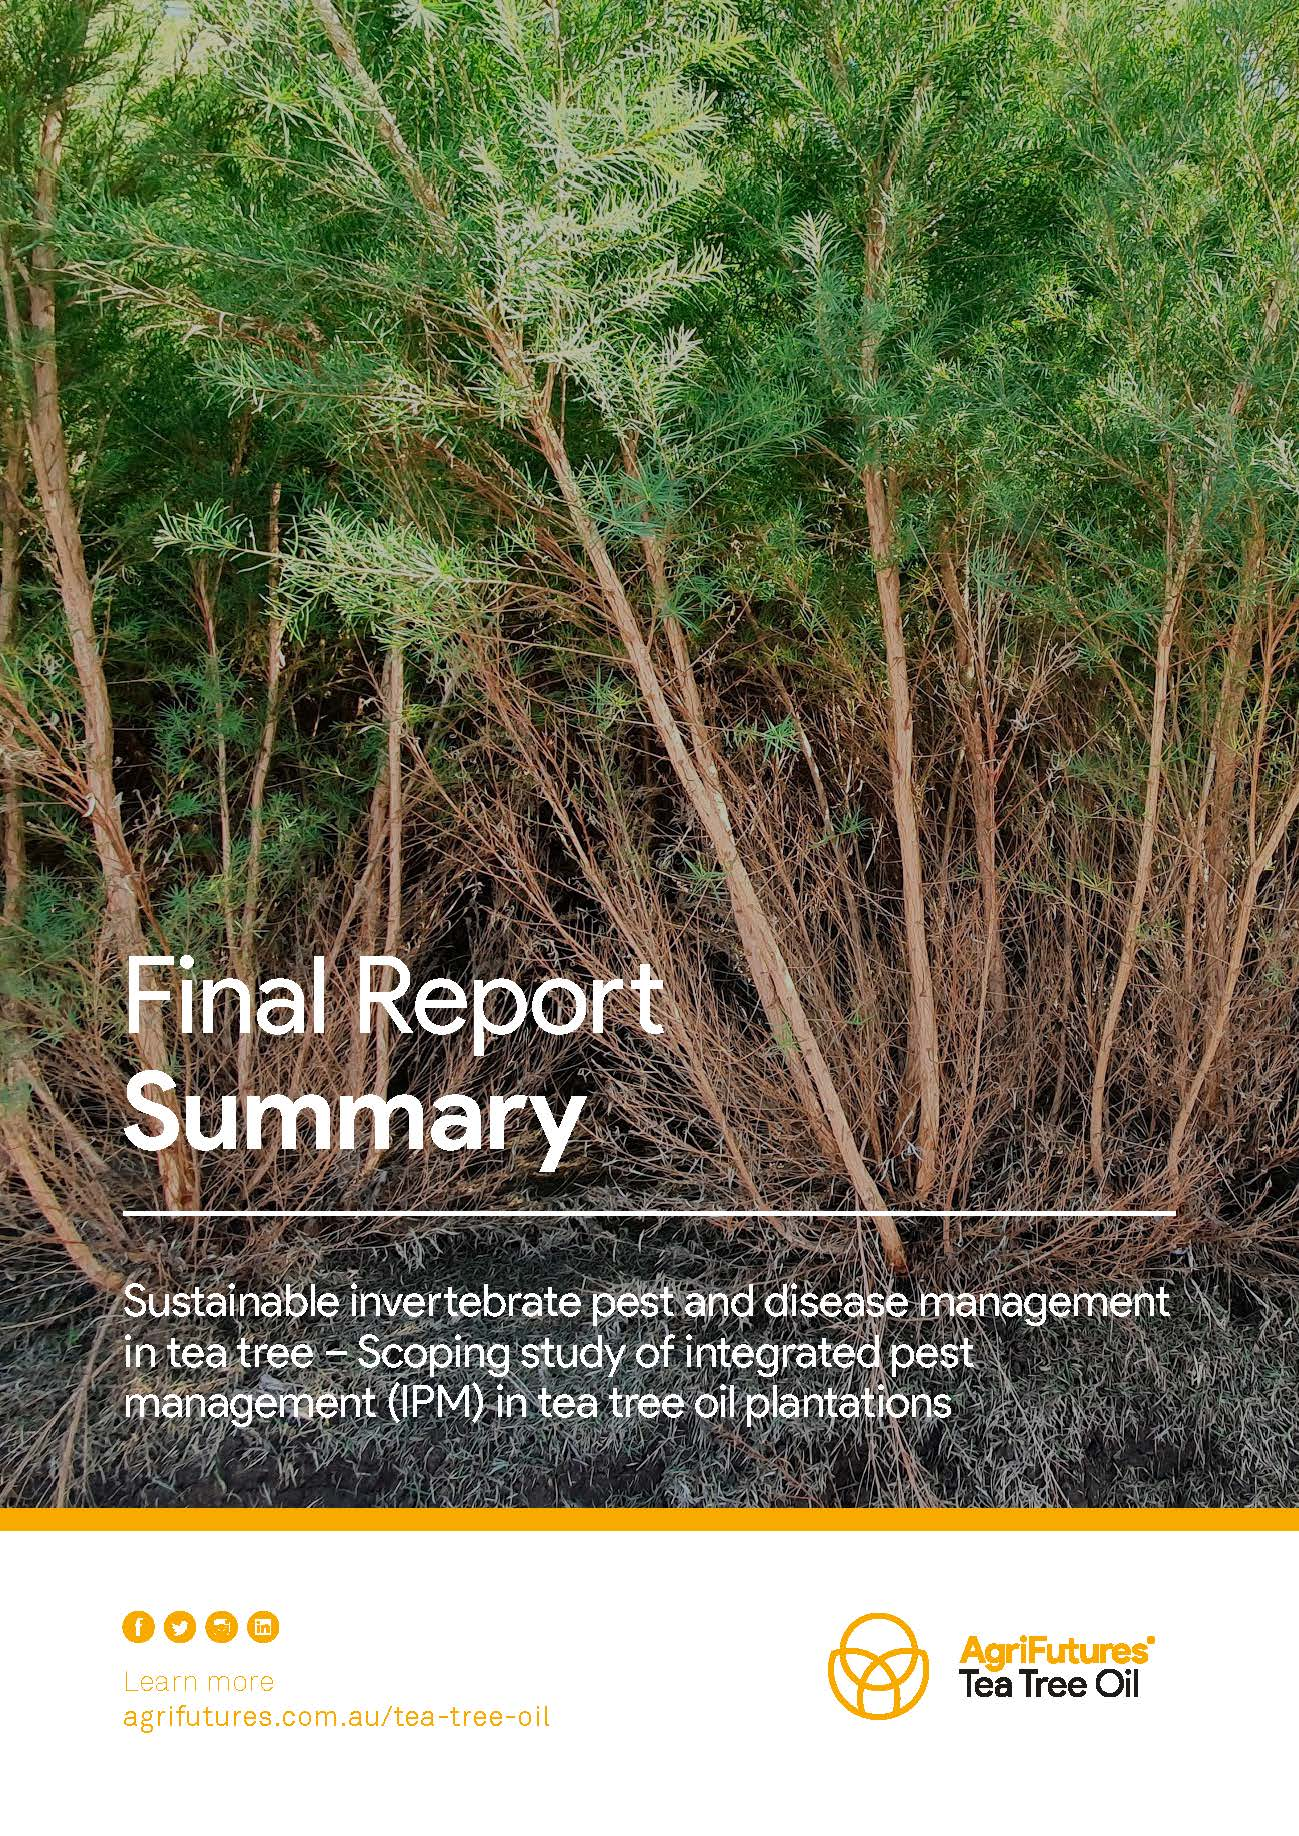 Final report summary: Sustainable invertebrate pest and disease management in tea tree - image